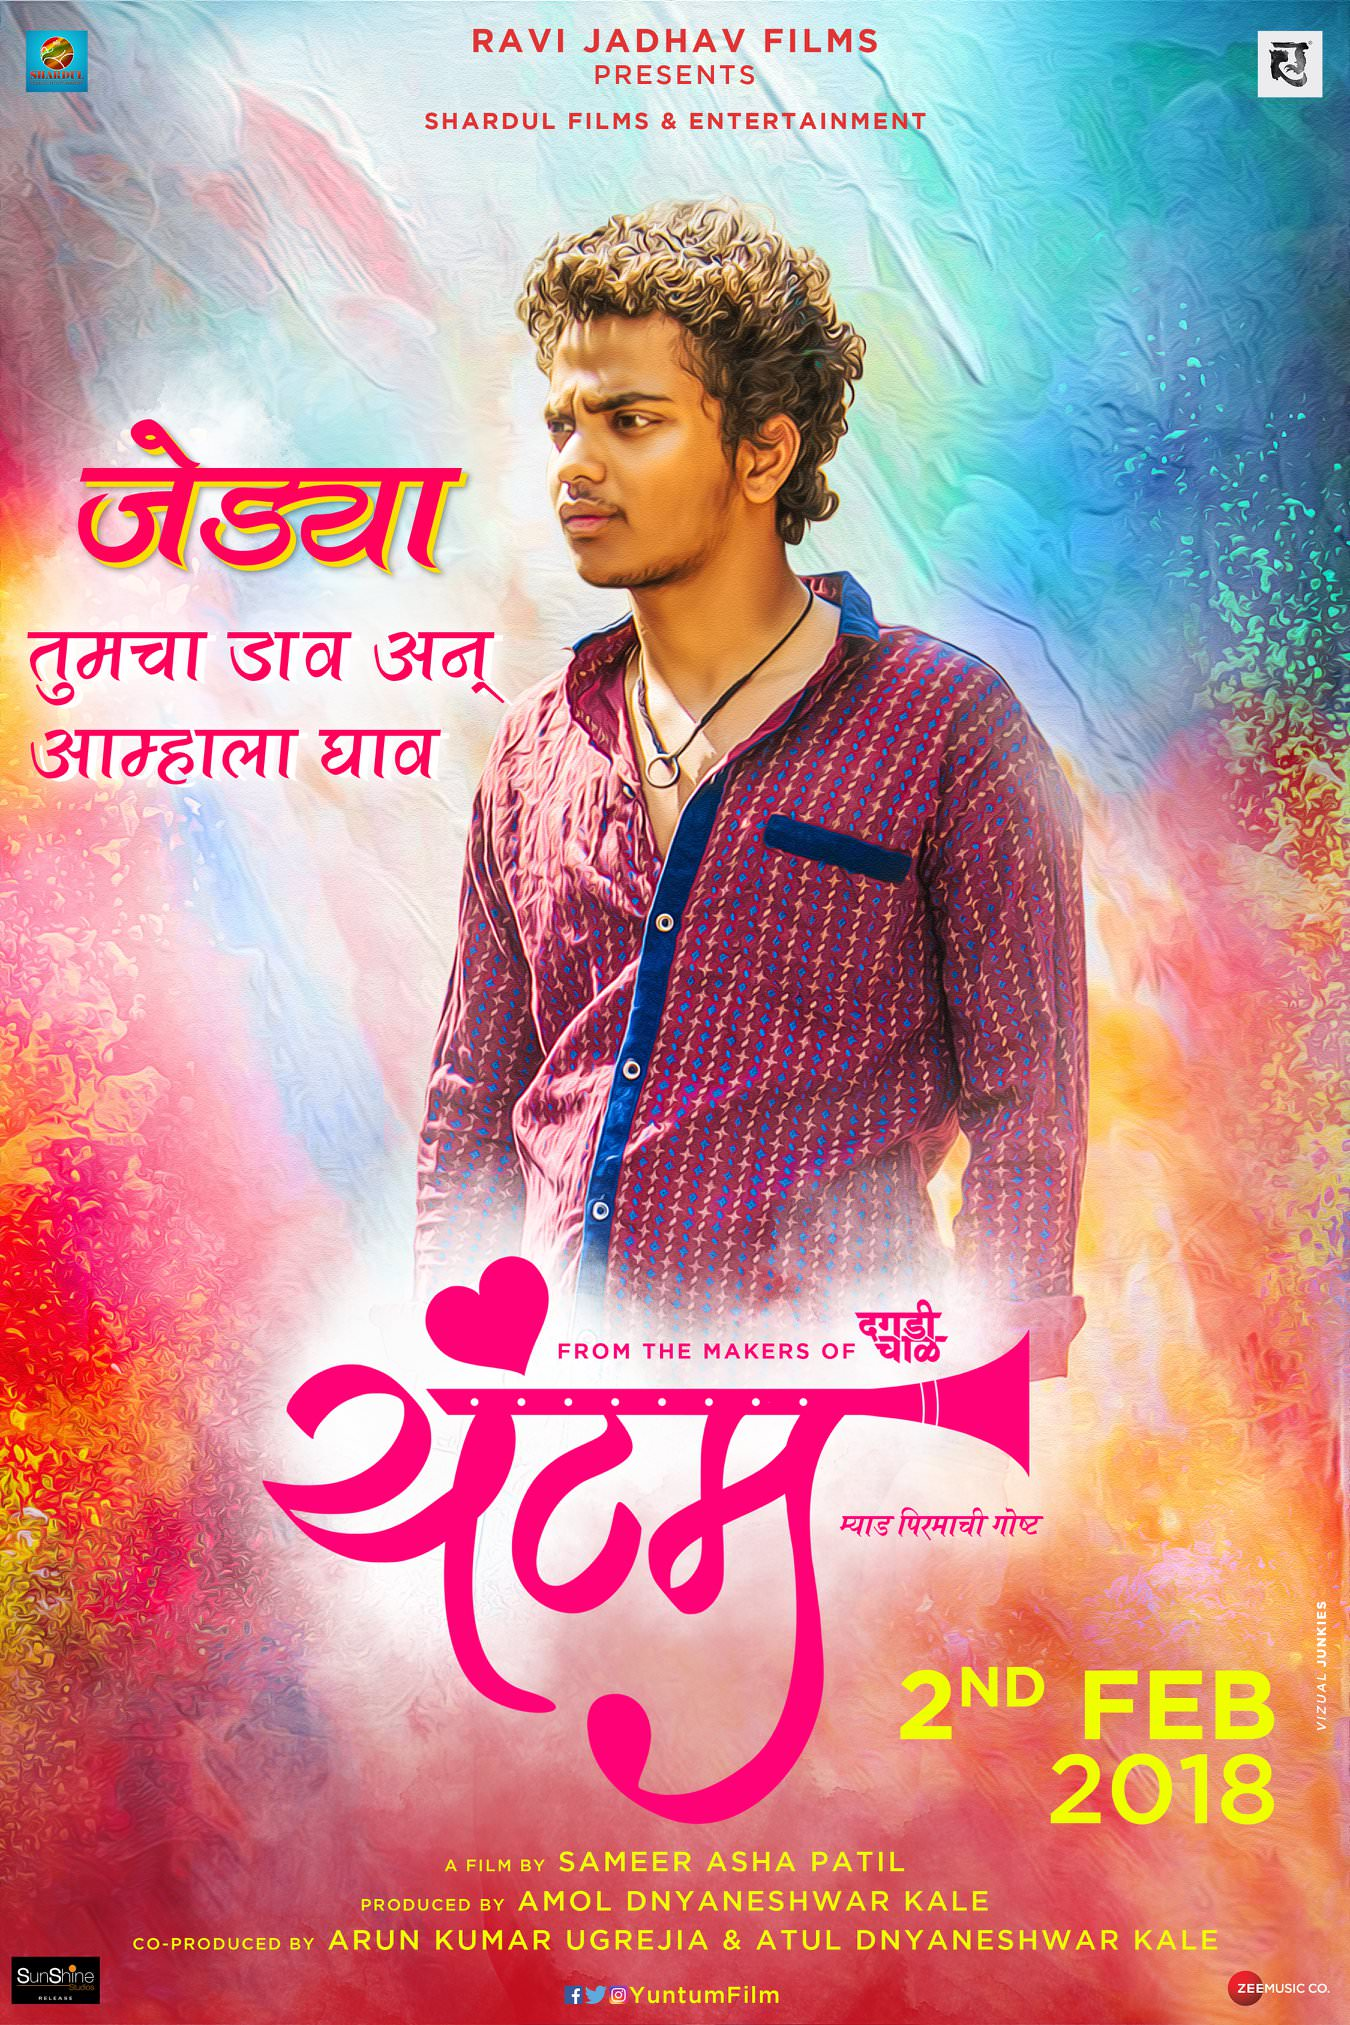 marathi movie trailer movies cast actress actor